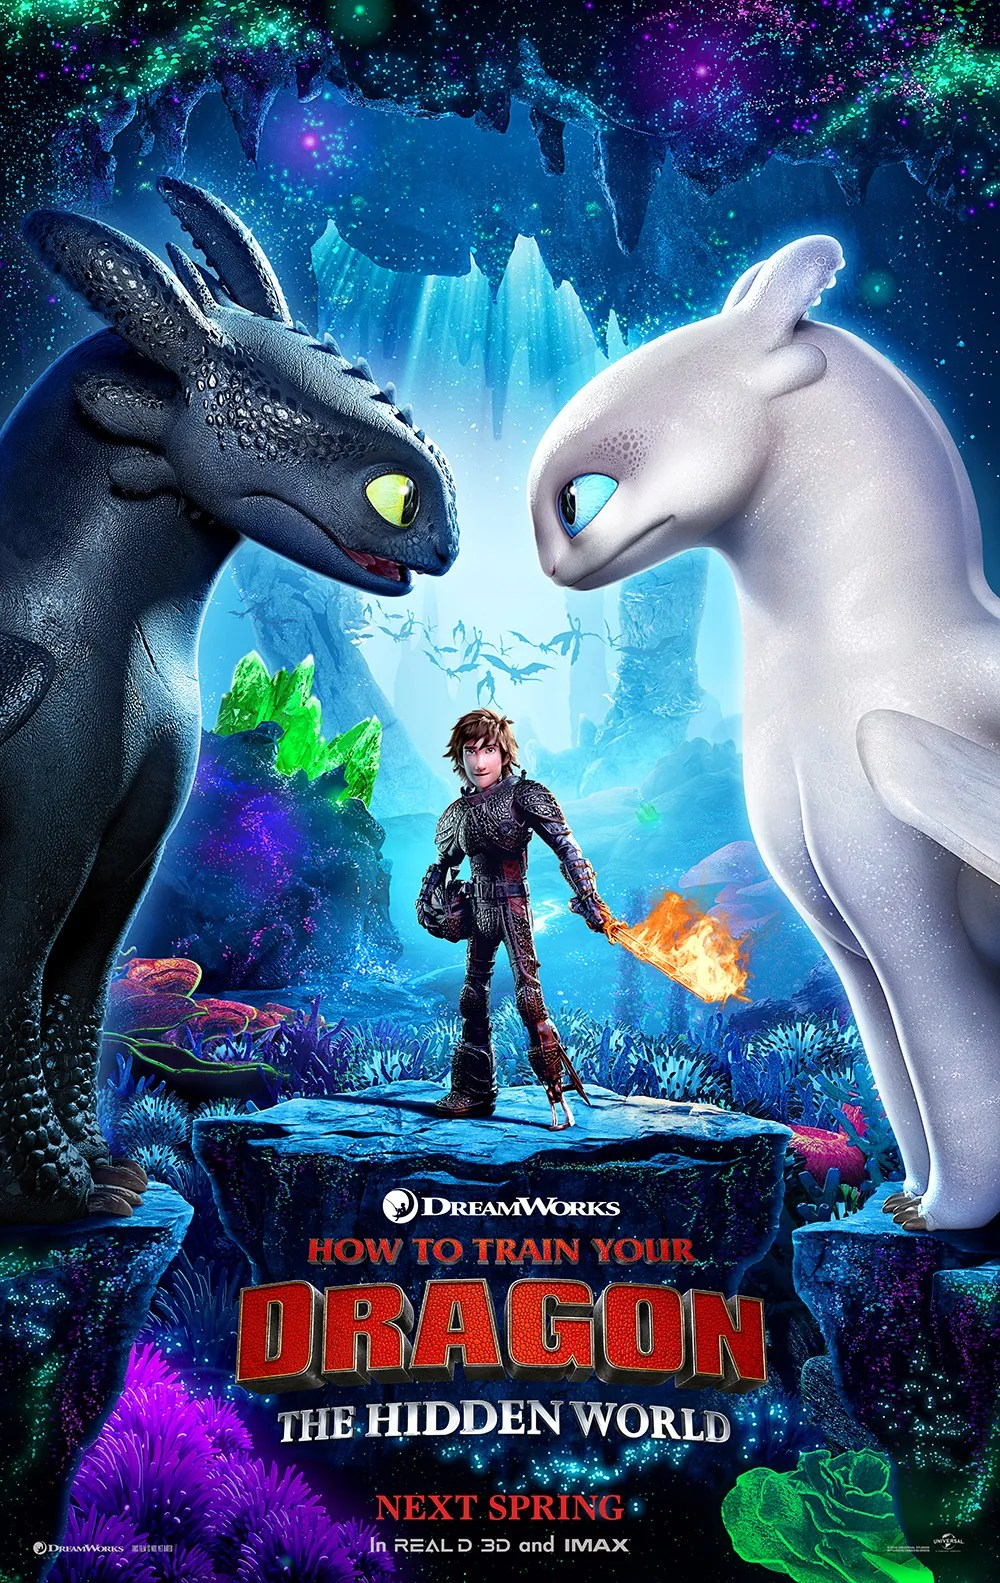 How to Train Your Dragon 3 Poster Has Toothless Finding ...